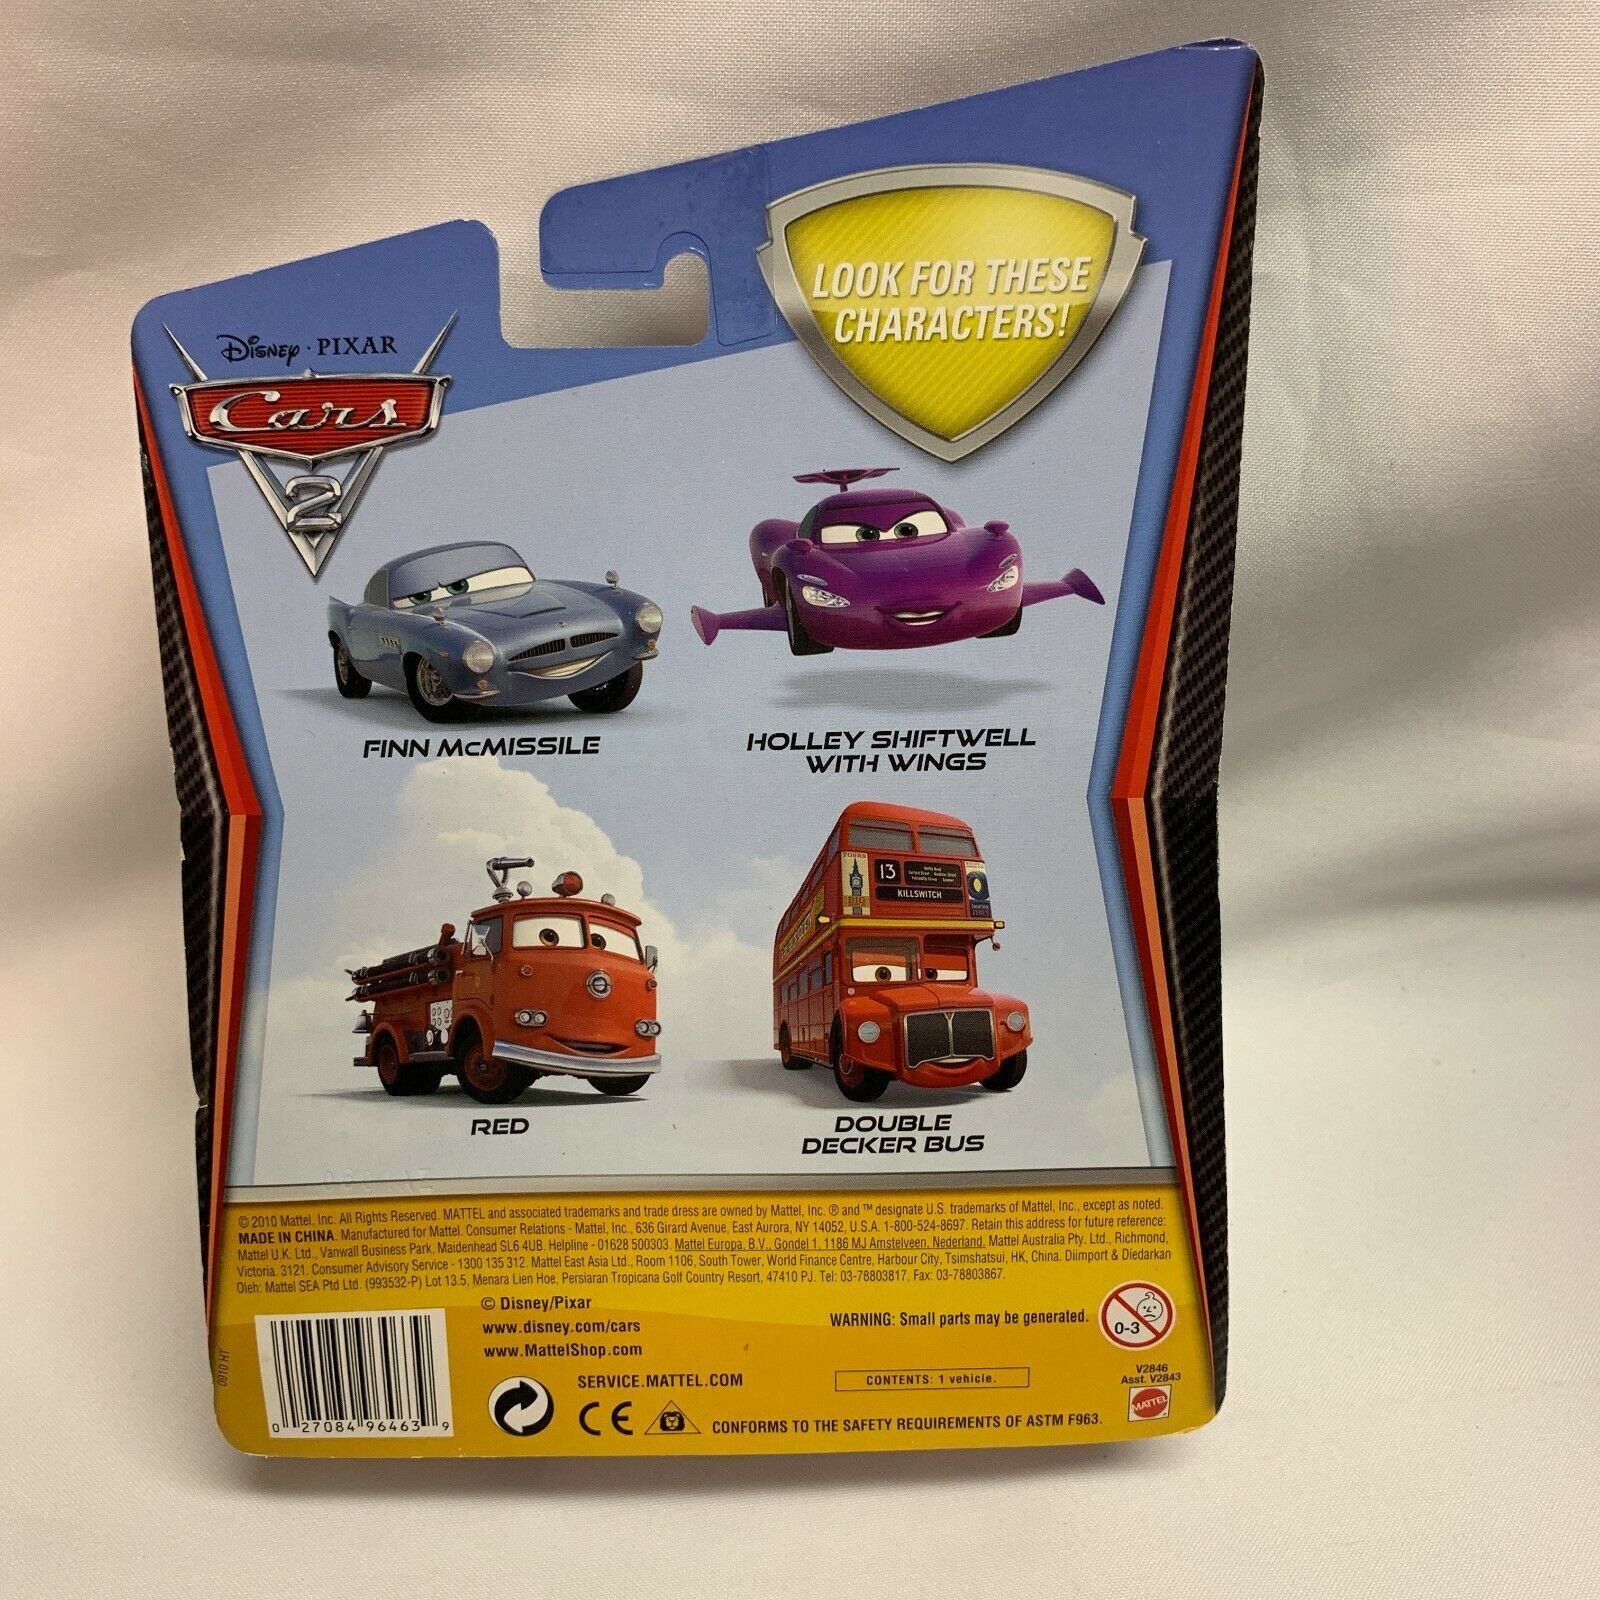 Disney Deluxe PIXAR Cars 2 RED #3 Fire Engine 2010 image 2